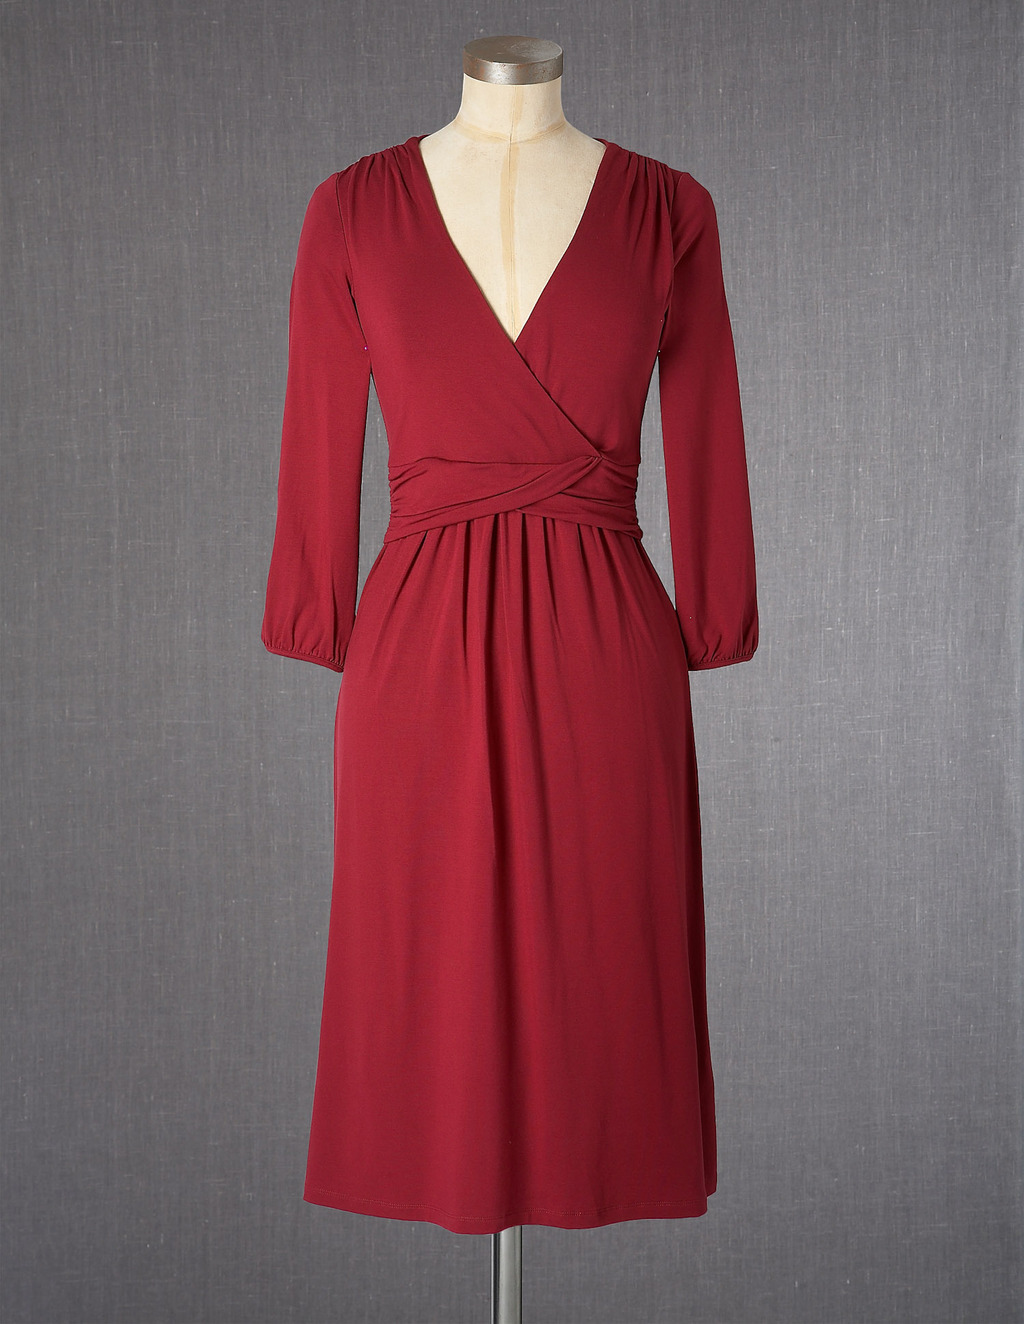 Edie Dress - style: faux wrap/wrap; neckline: v-neck; fit: fitted at waist; pattern: plain; waist detail: flattering waist detail; predominant colour: burgundy; occasions: casual; length: on the knee; fibres: viscose/rayon - stretch; sleeve length: 3/4 length; sleeve style: standard; pattern type: fabric; texture group: jersey - stretchy/drapey; season: a/w 2013